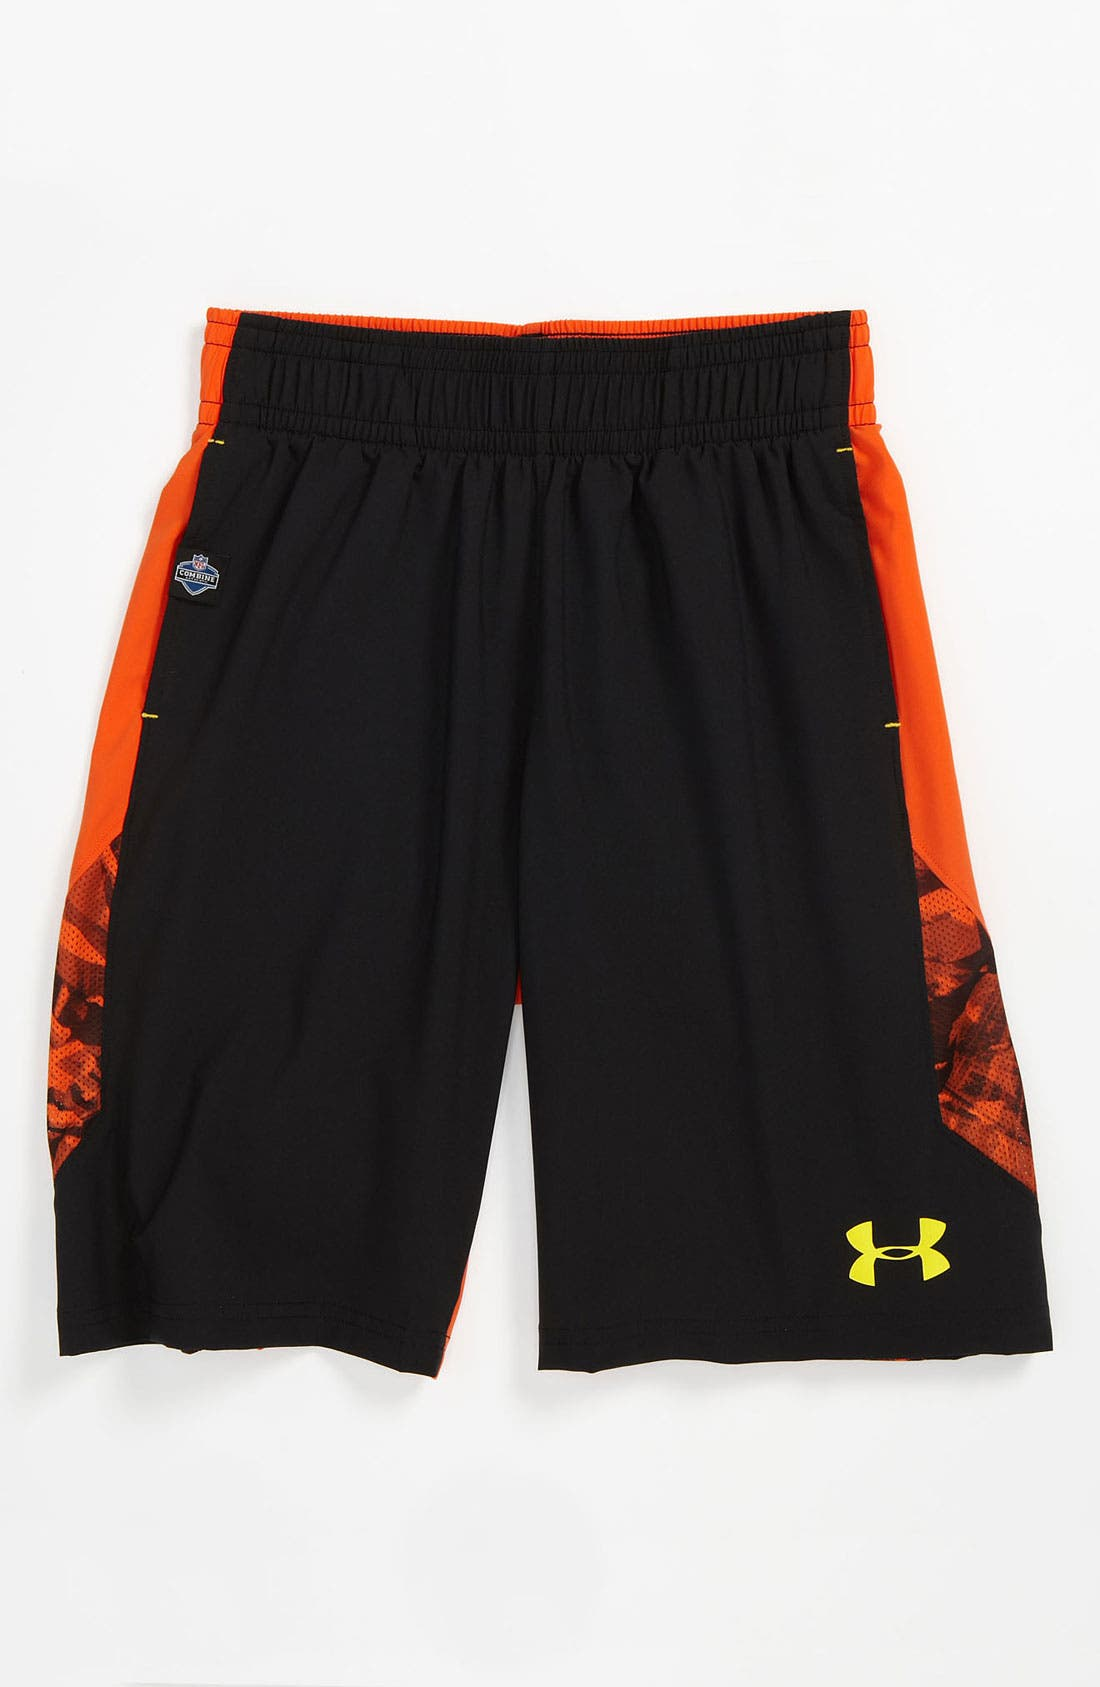 Main Image - Under Armour 'NFL Combine' Shorts (Big Boys)